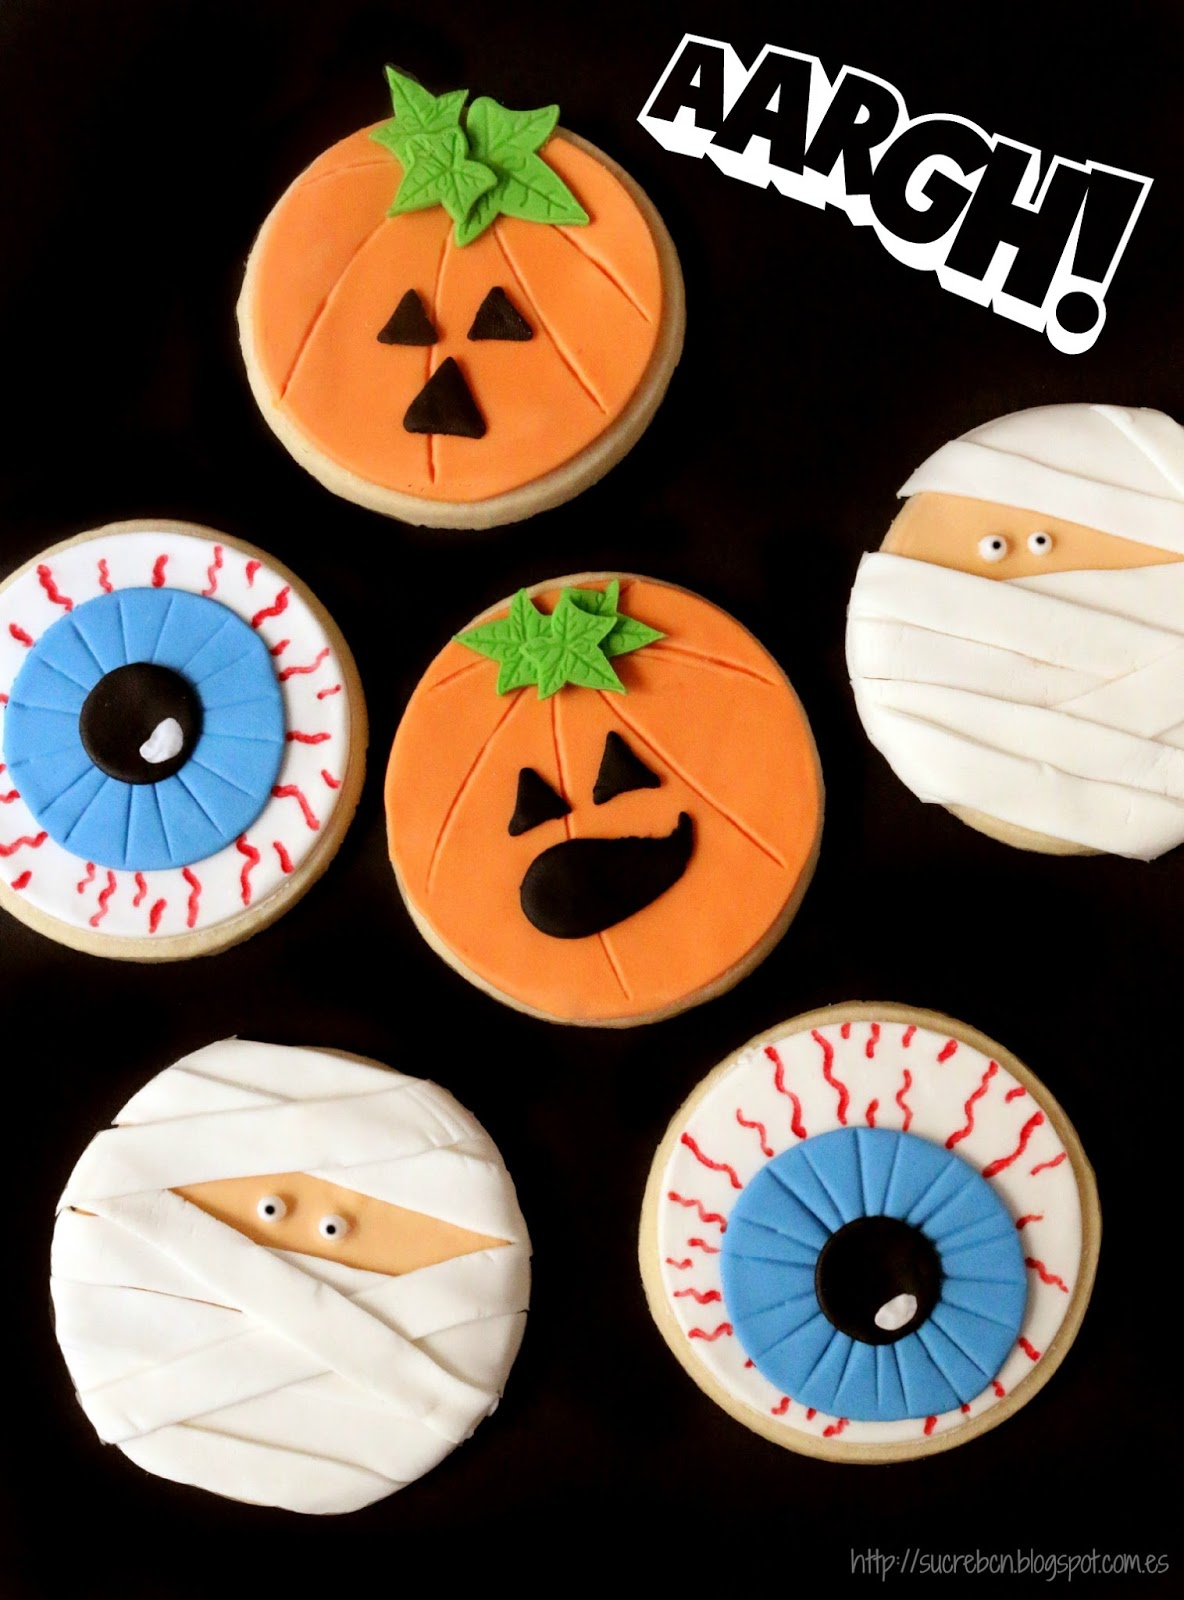 Galletas Decoradas Hallowen Sucre De Maduixa Galletas Terroríficas Para Halloween